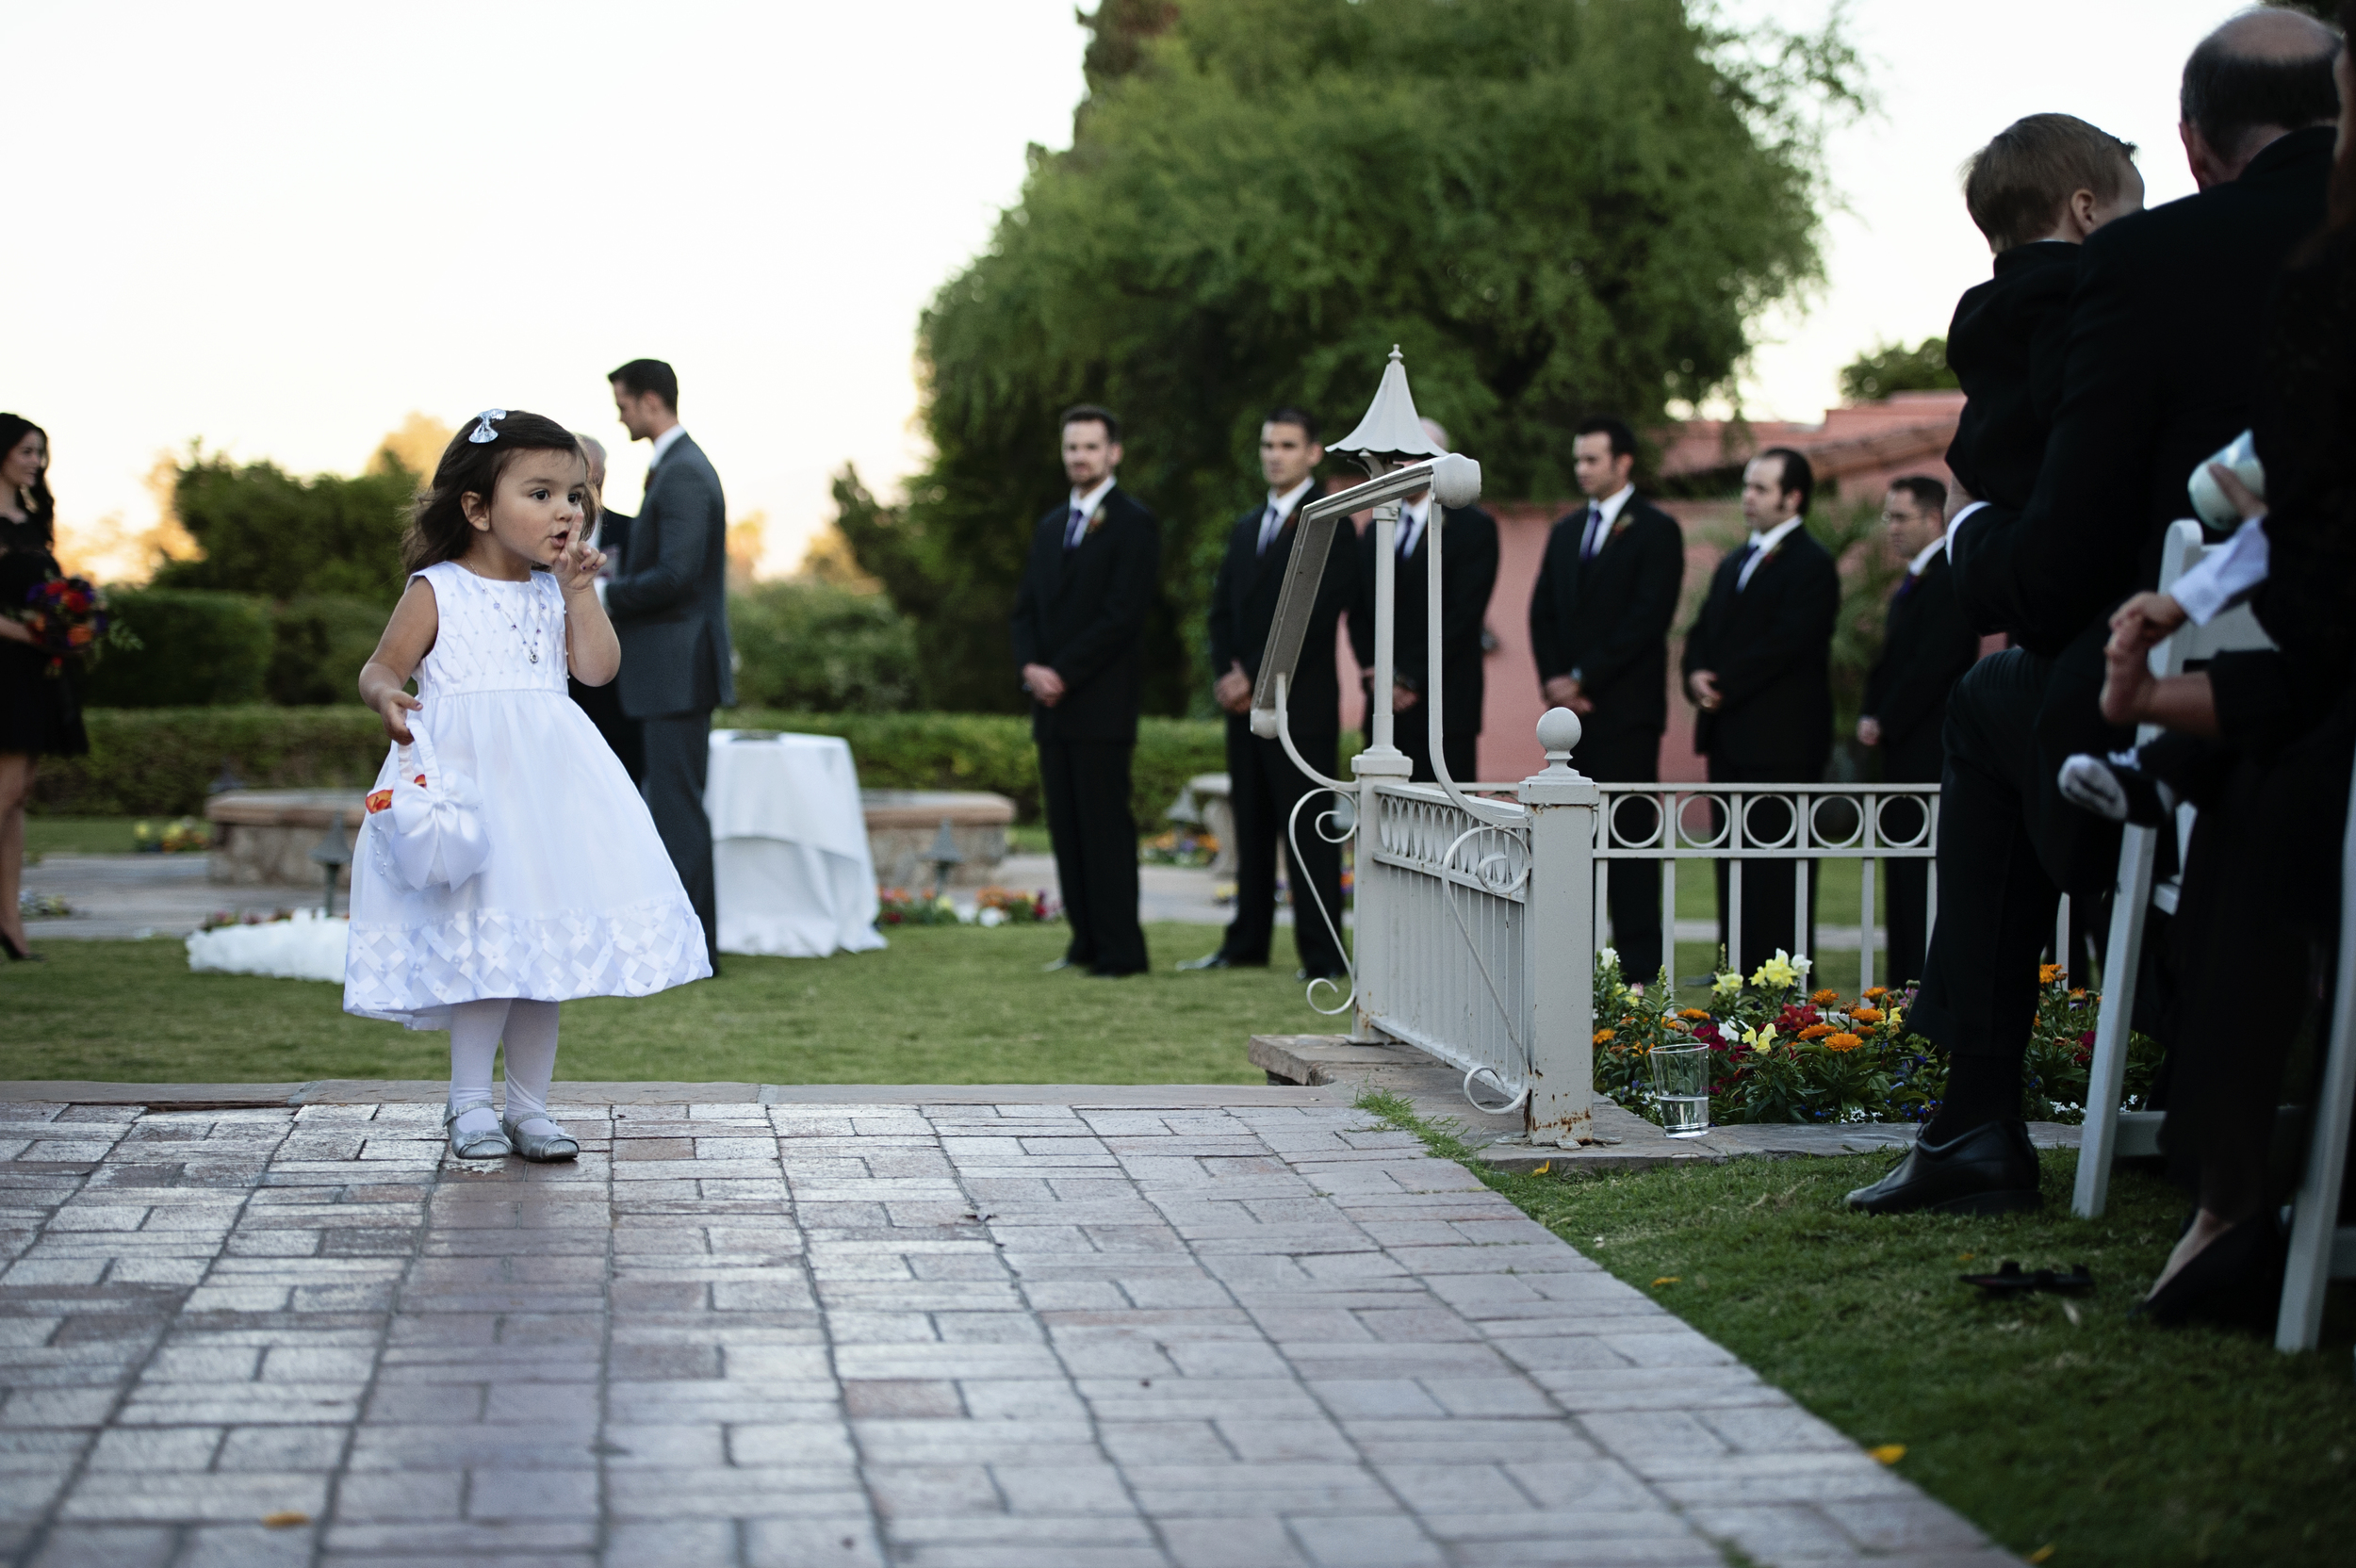 The flower girl took her job very seriously, and shushed guests who were chatting!    Destination Wedding Planner:   Andrea Eppolito Events   |  Historical Wedding Venue:   The Arizona Inn   |  Photography:  Raylene Streuber